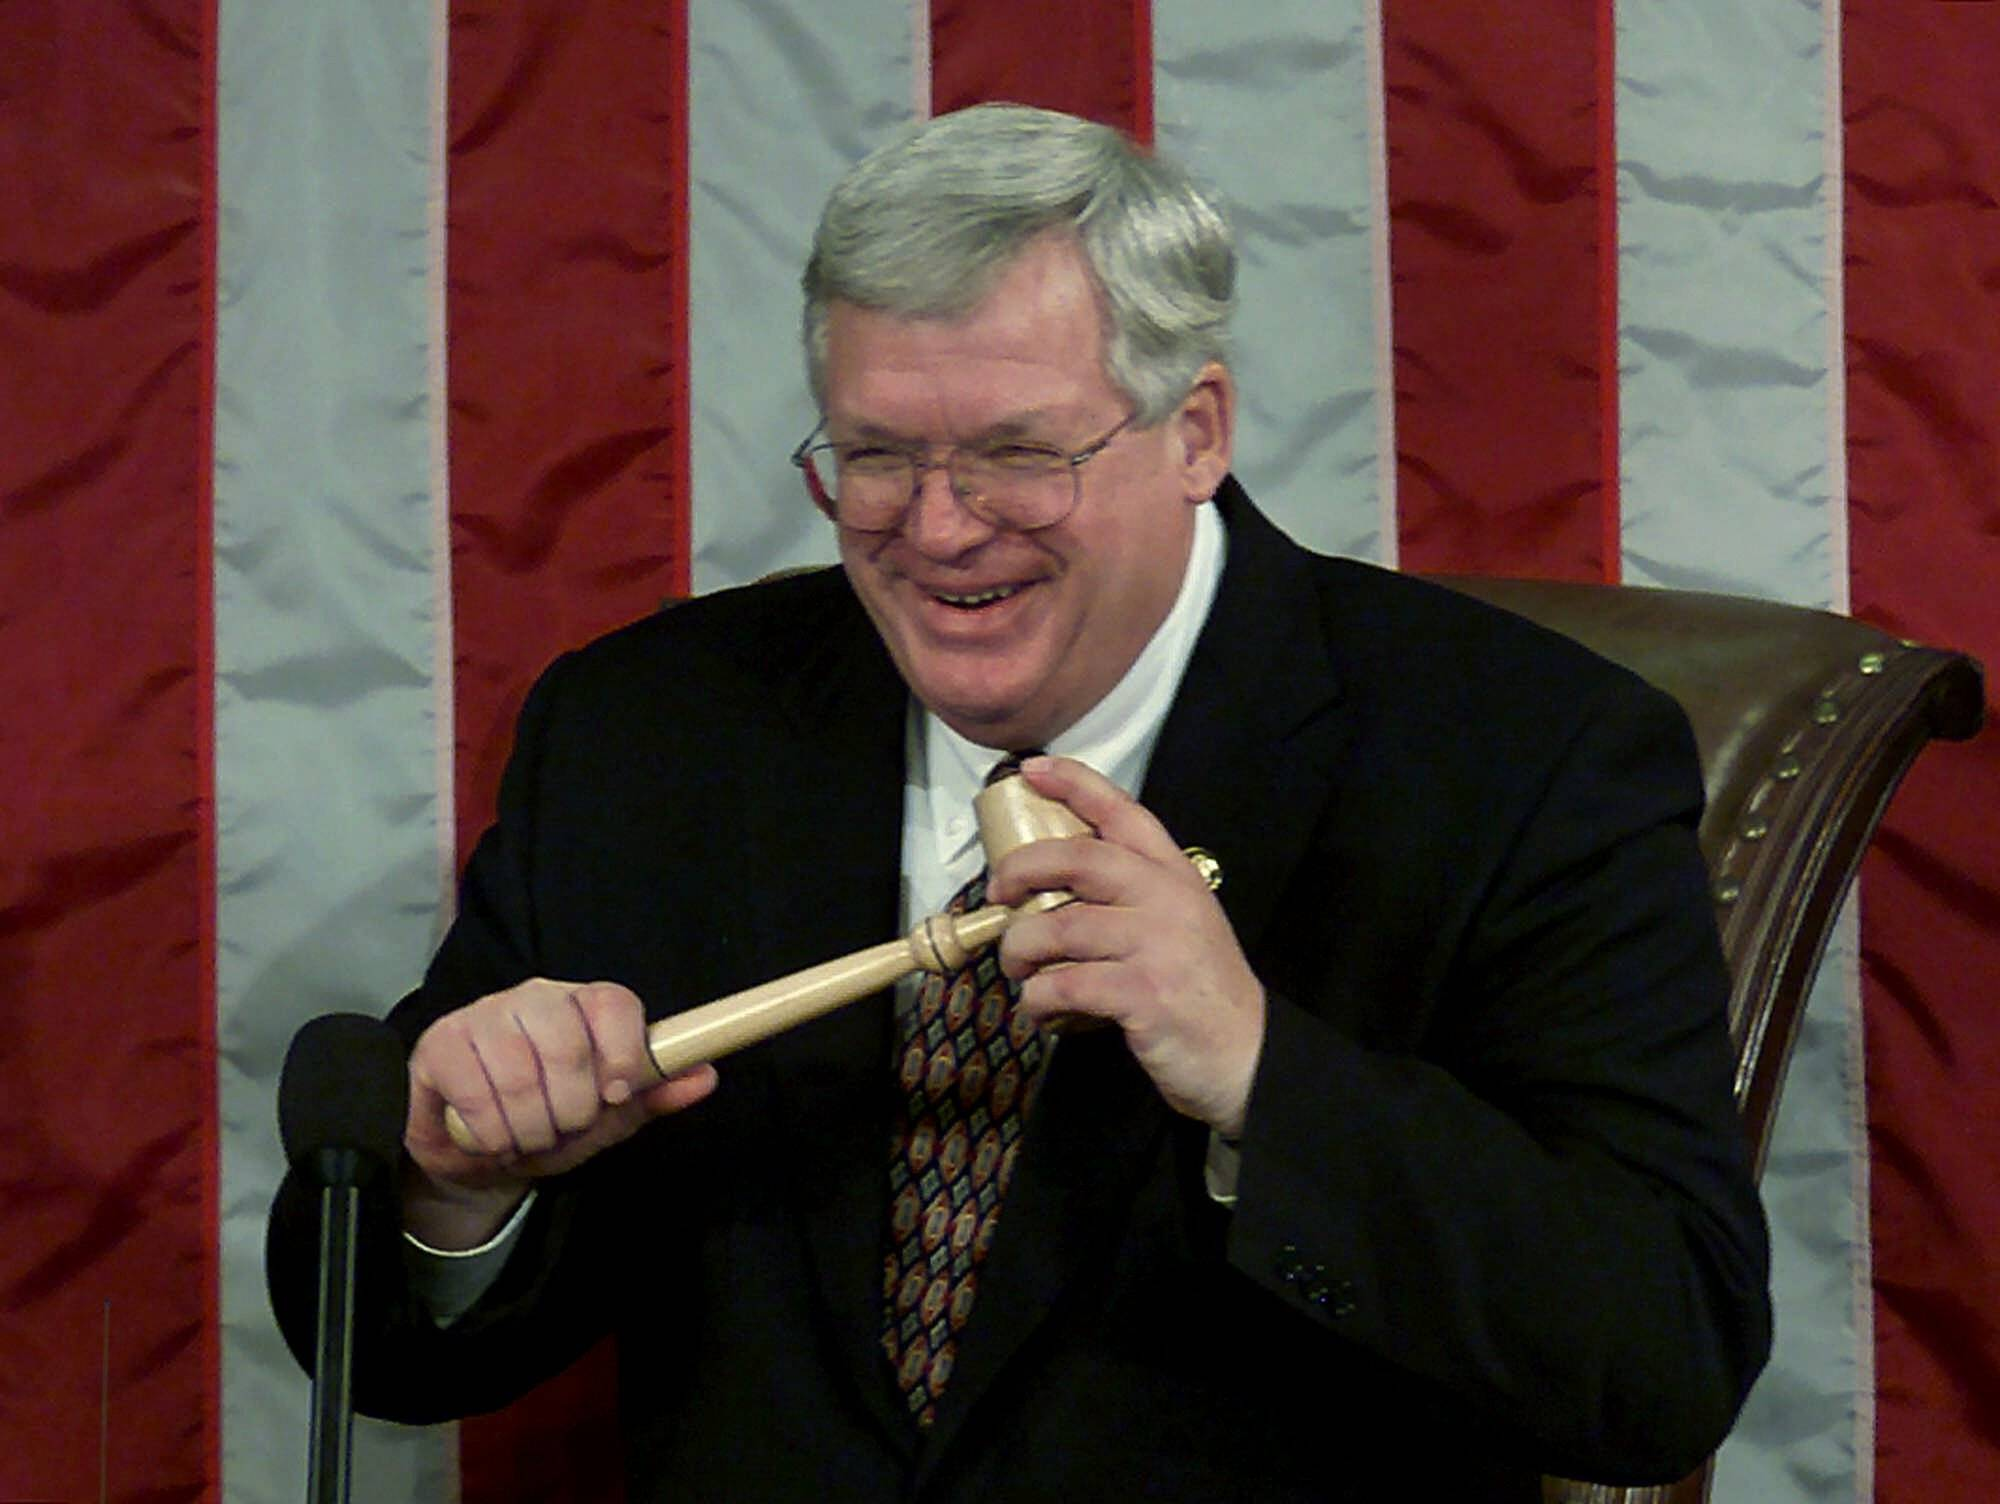 Patriot Act that Hastert heralded helped bring his downfall